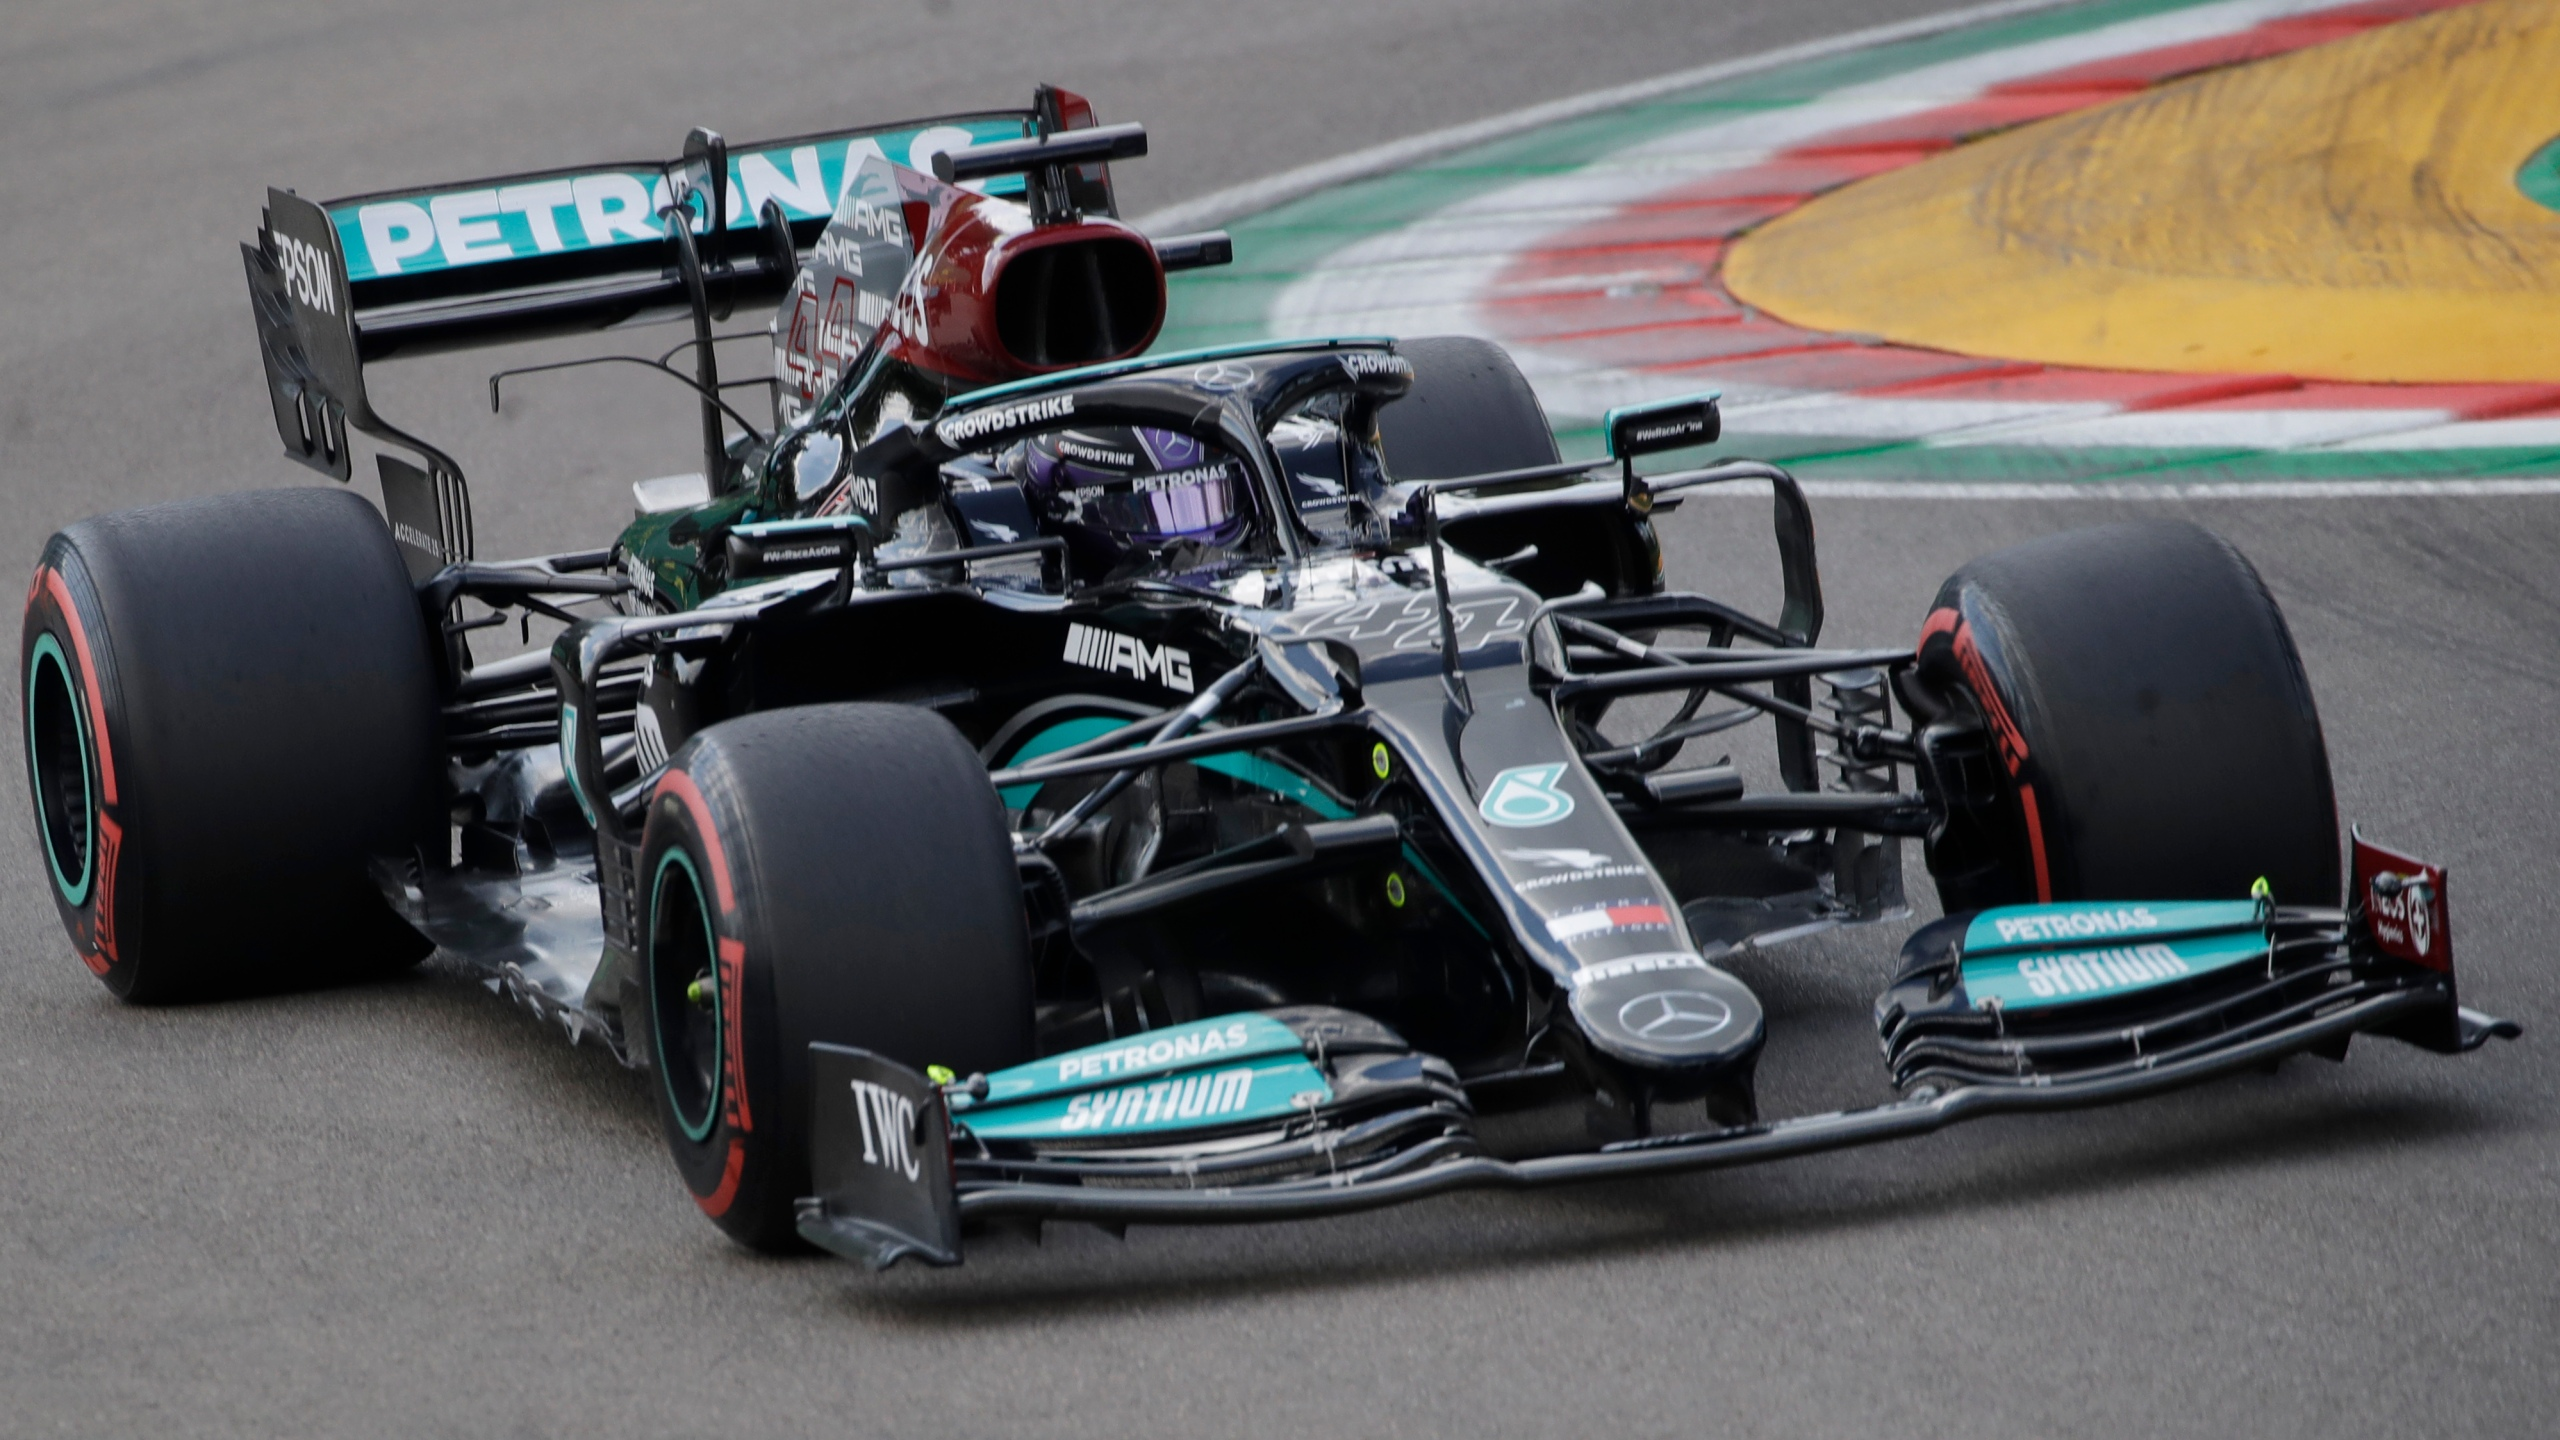 F1 2022 Calendar.Miami Gp To Join F1 Calendar From 2022 In 10 Year Deal Wfla